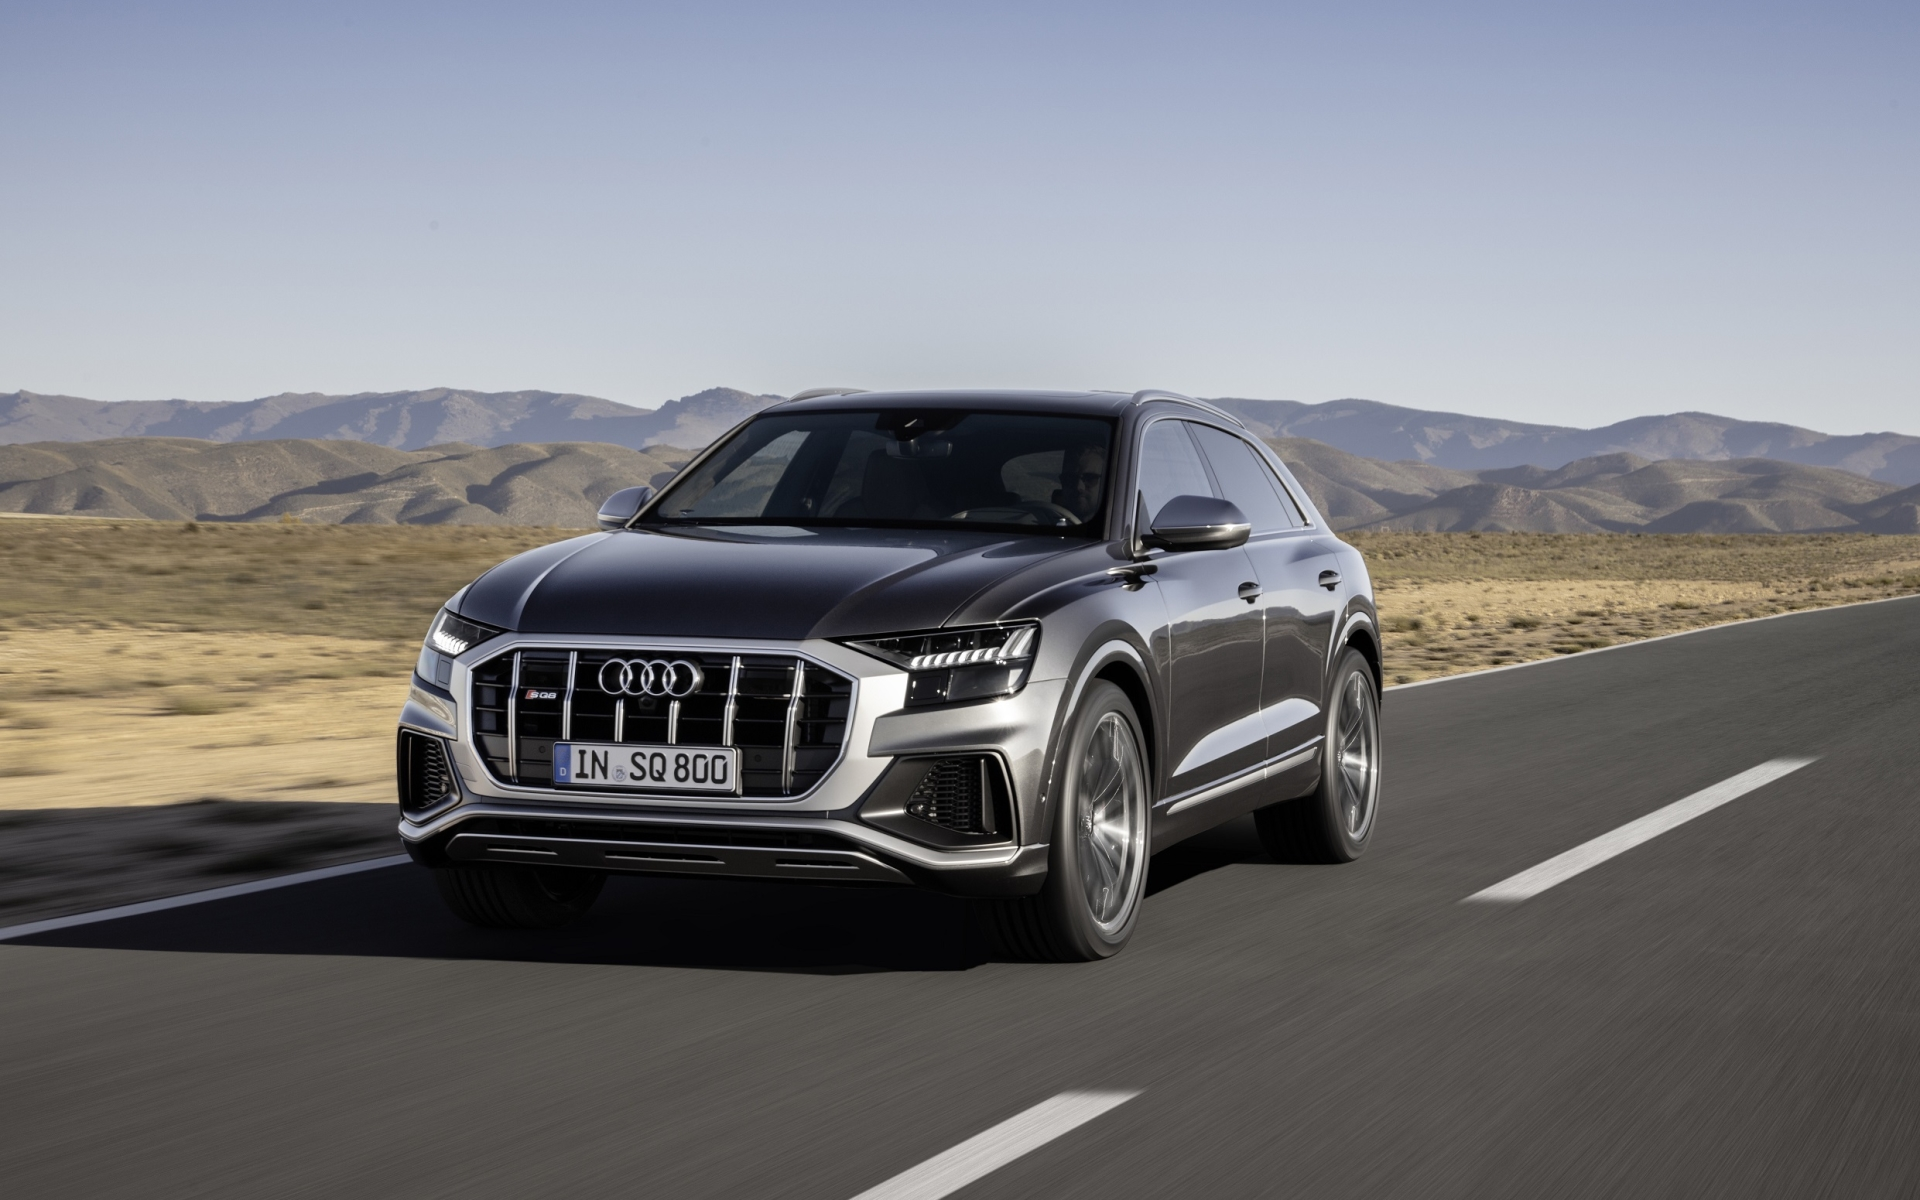 Wallpaper Of Audi Audi Q8 Luxury Car Suv Silver Car Background